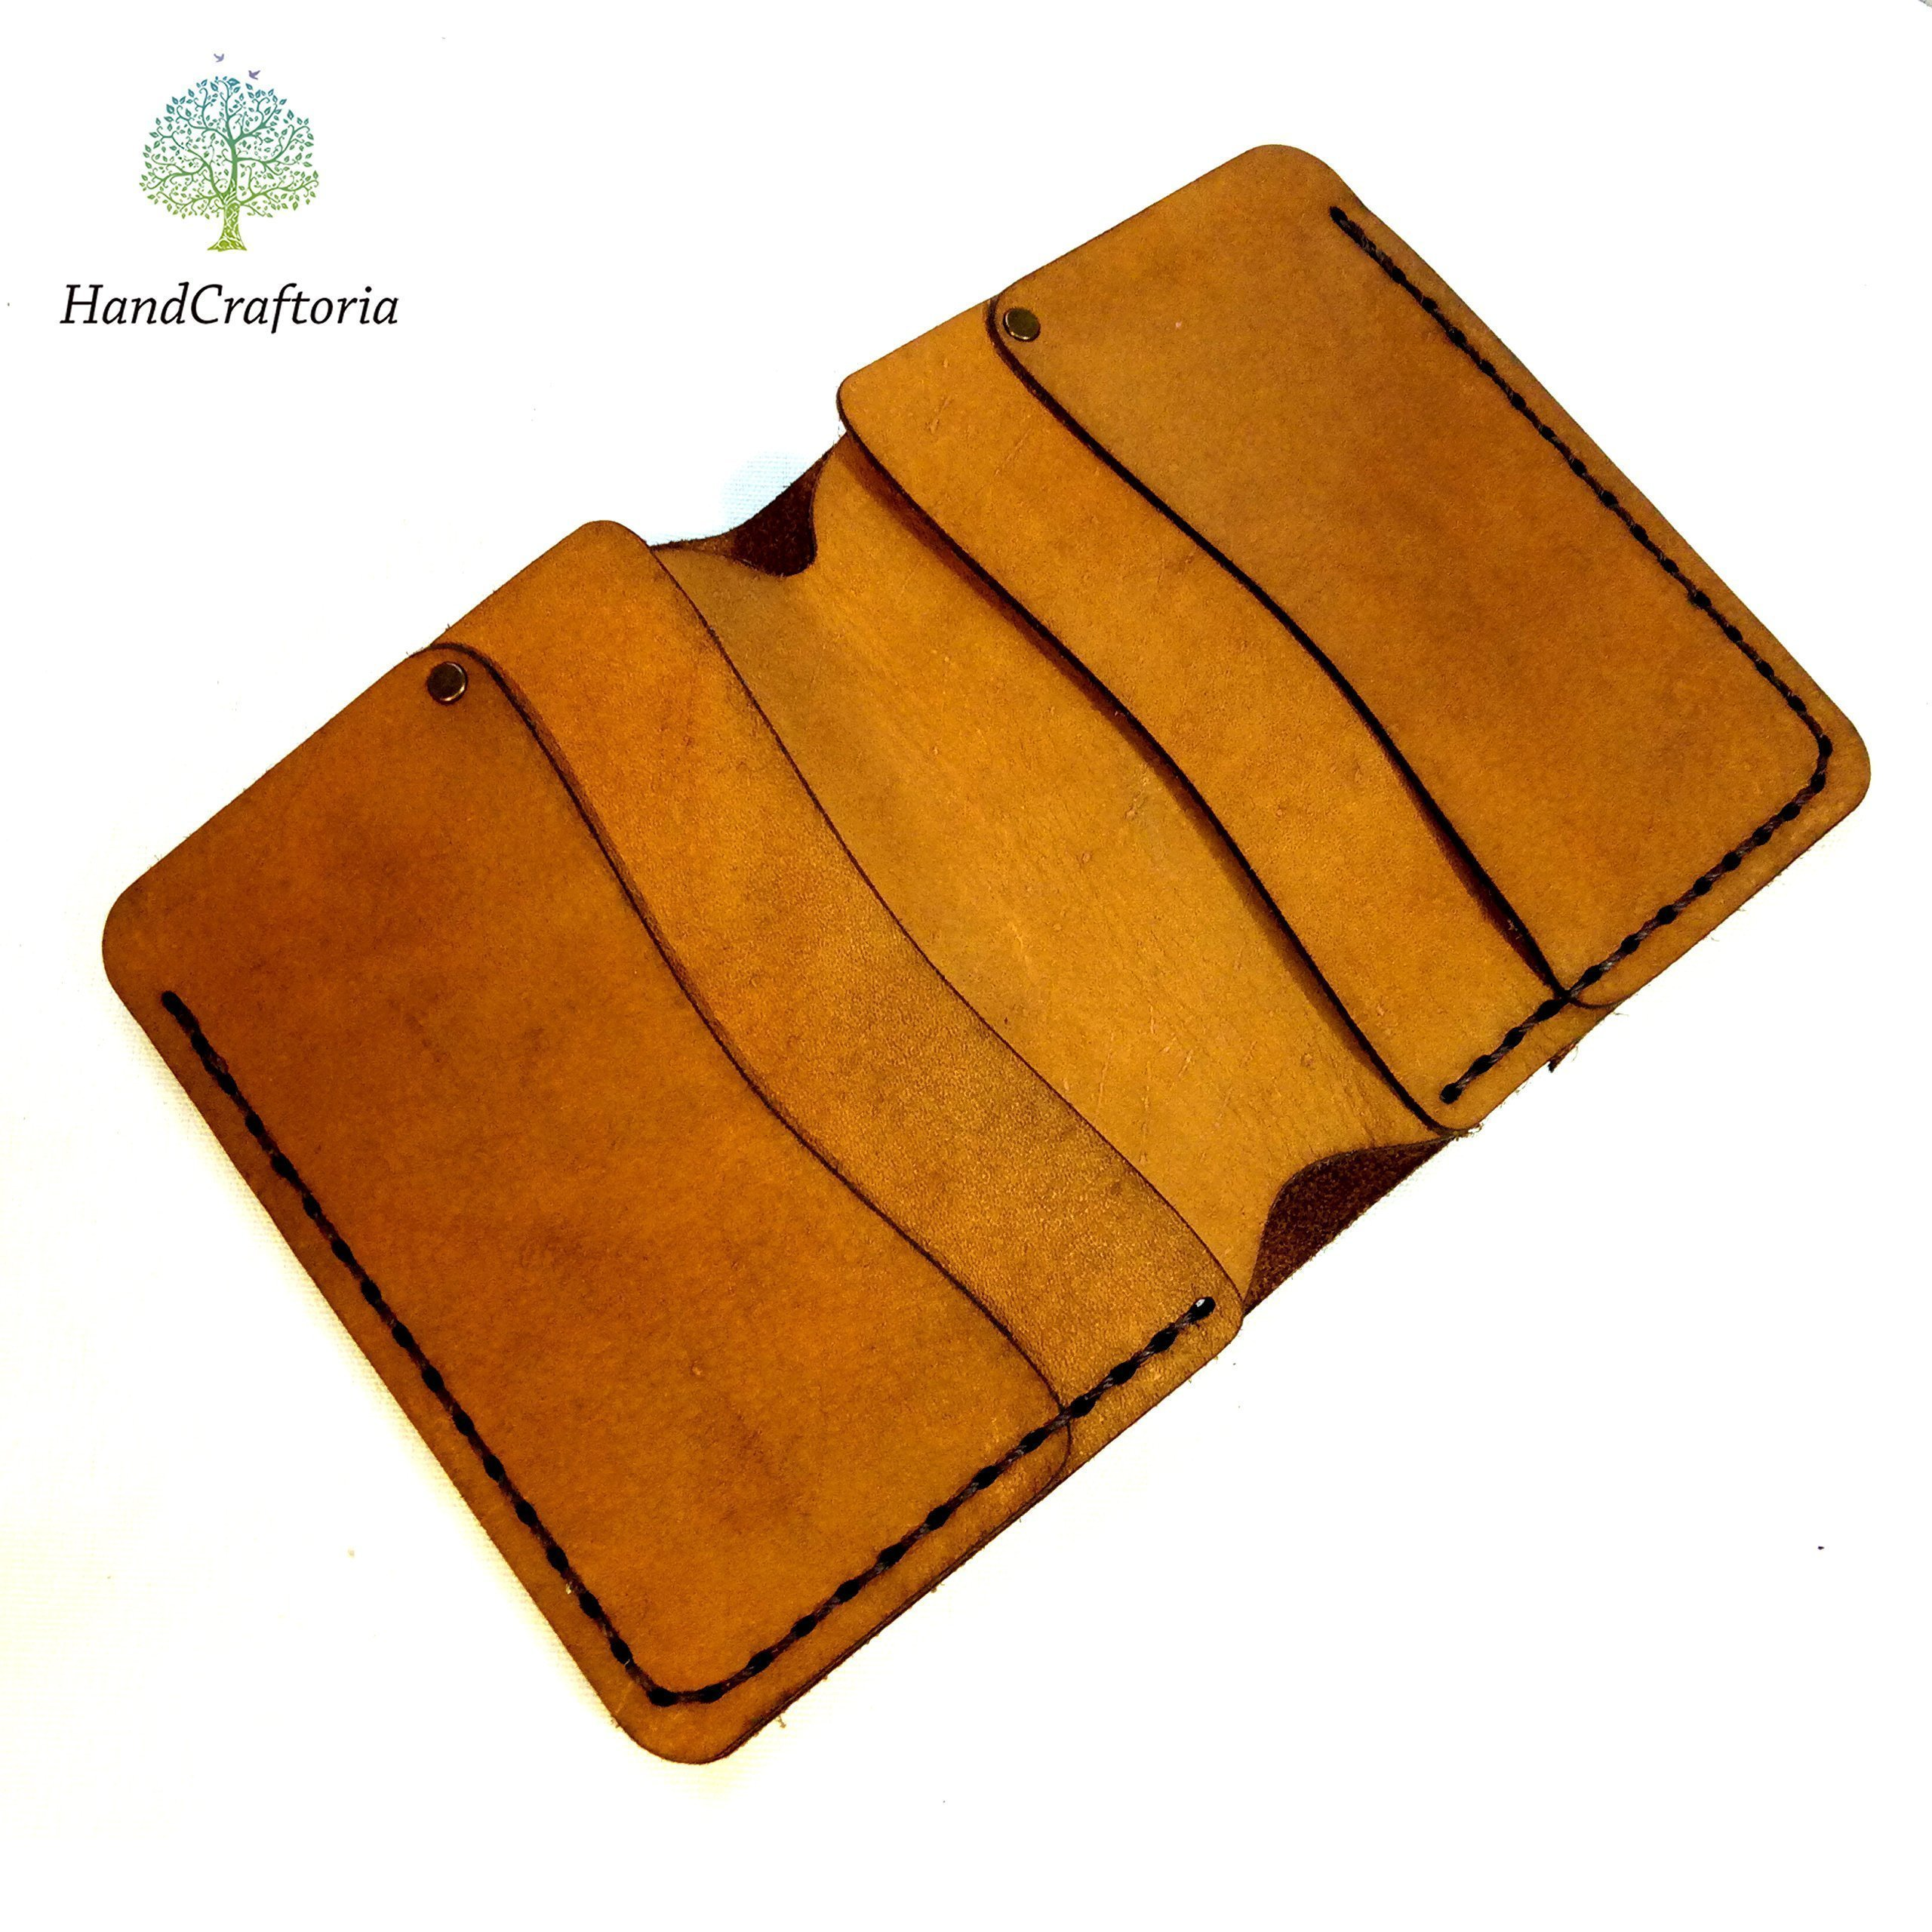 2dded4f682f1 ایگرد - خرید از آمازون | Genuine leather Wallet for Men made from ...